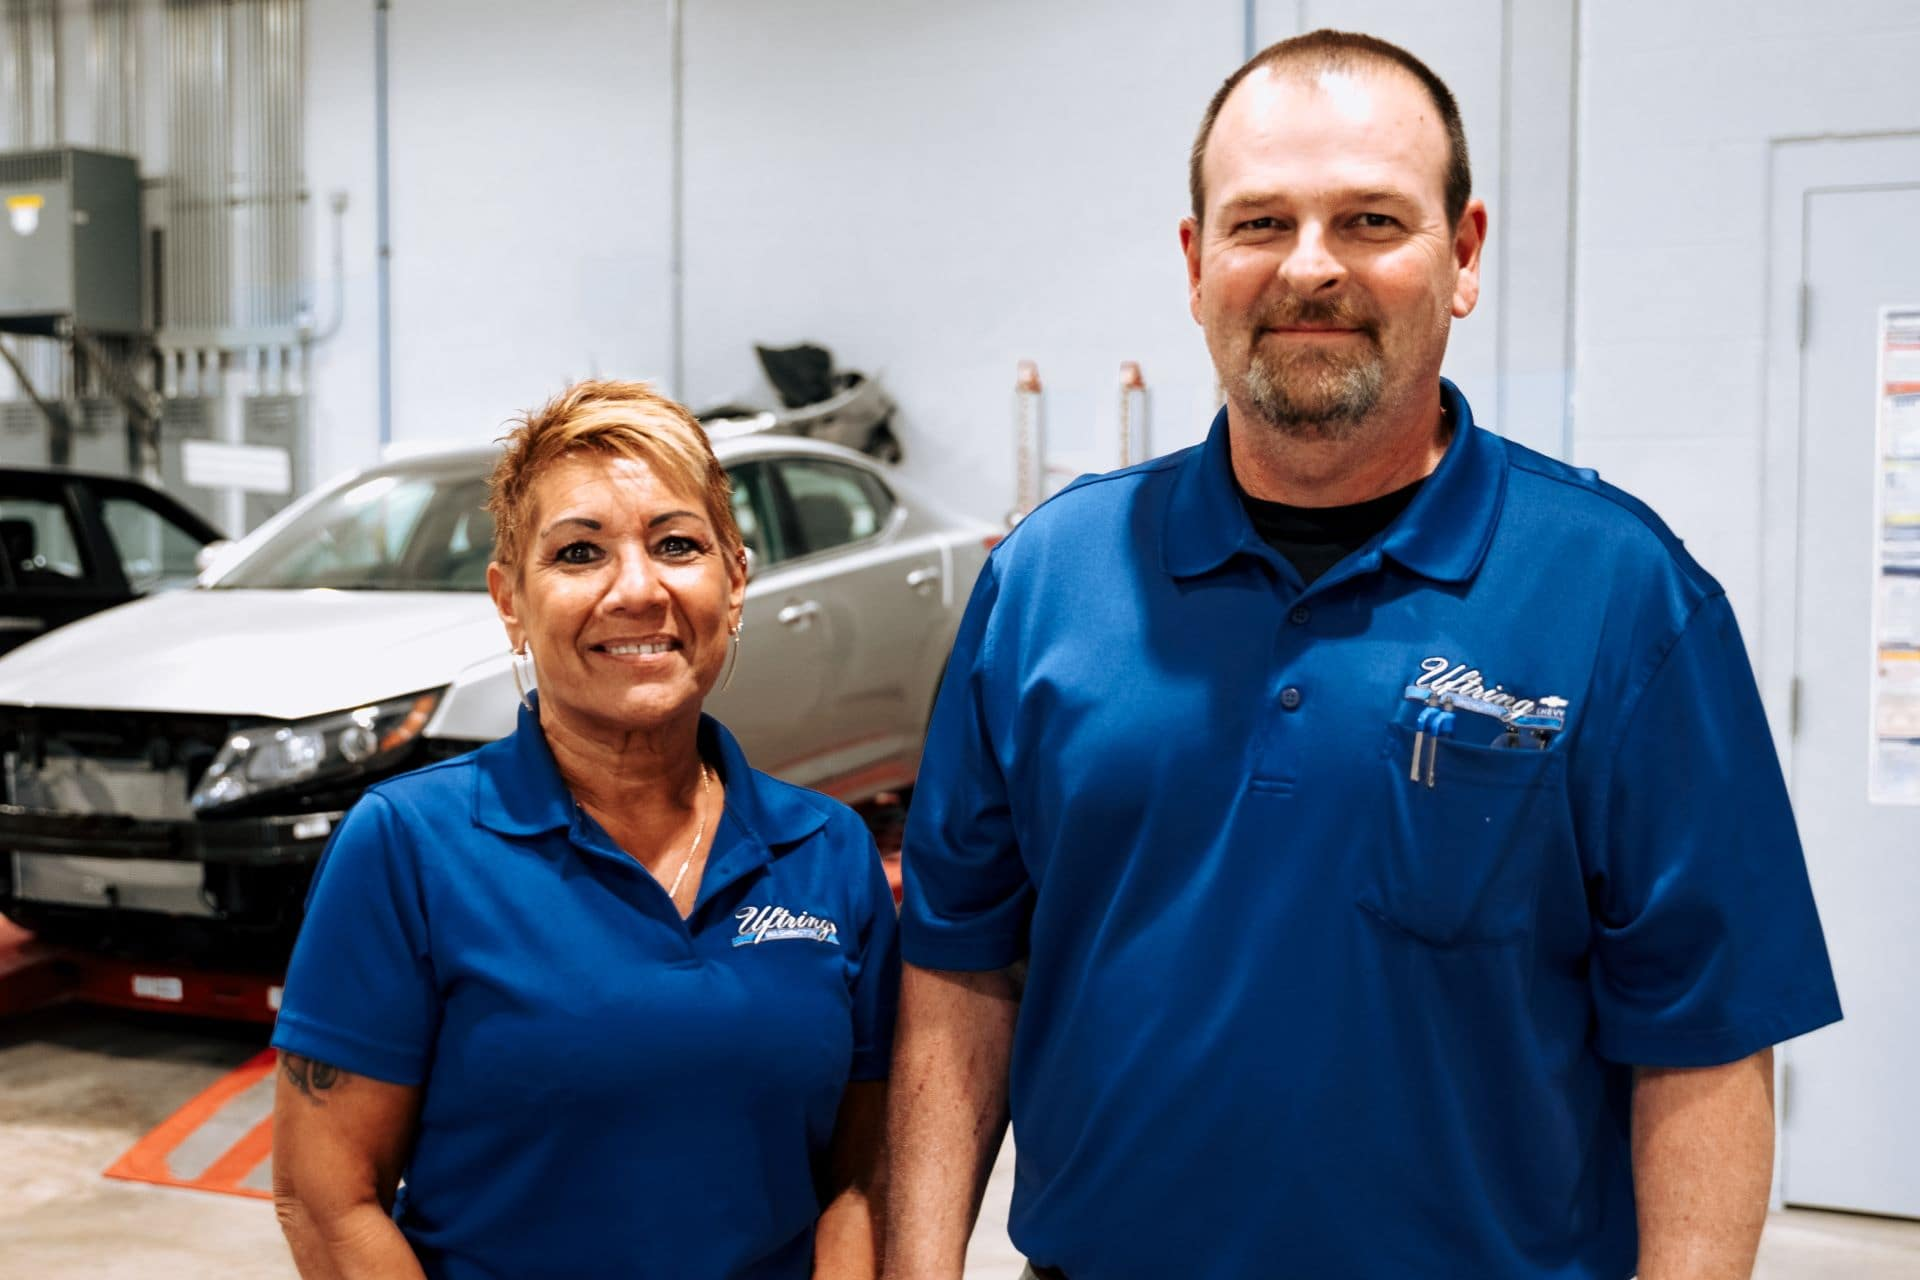 Uftring Body Shop Image - Uftring Certified Staff member